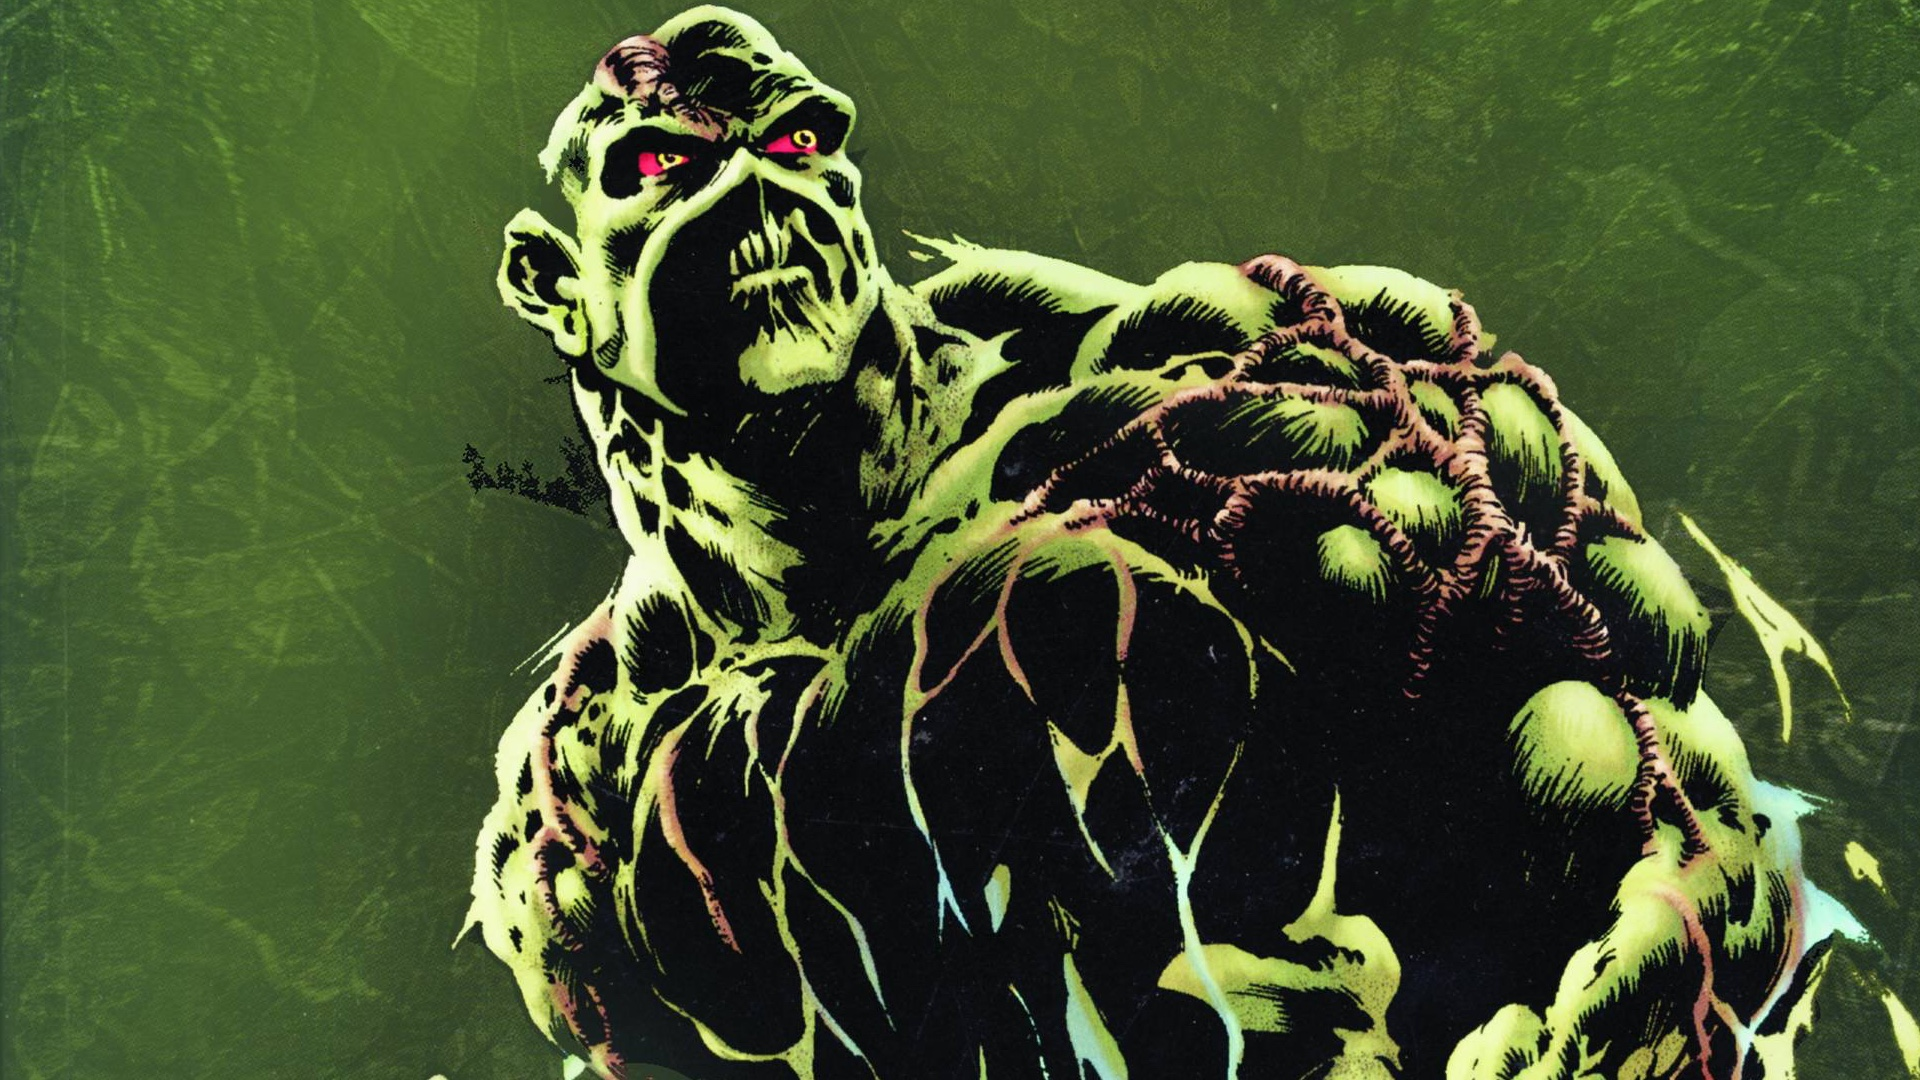 james-wans-swamp-thing-series-will-not-be-part-of-the-titans-and-doom-patrol-universe-social.jpg